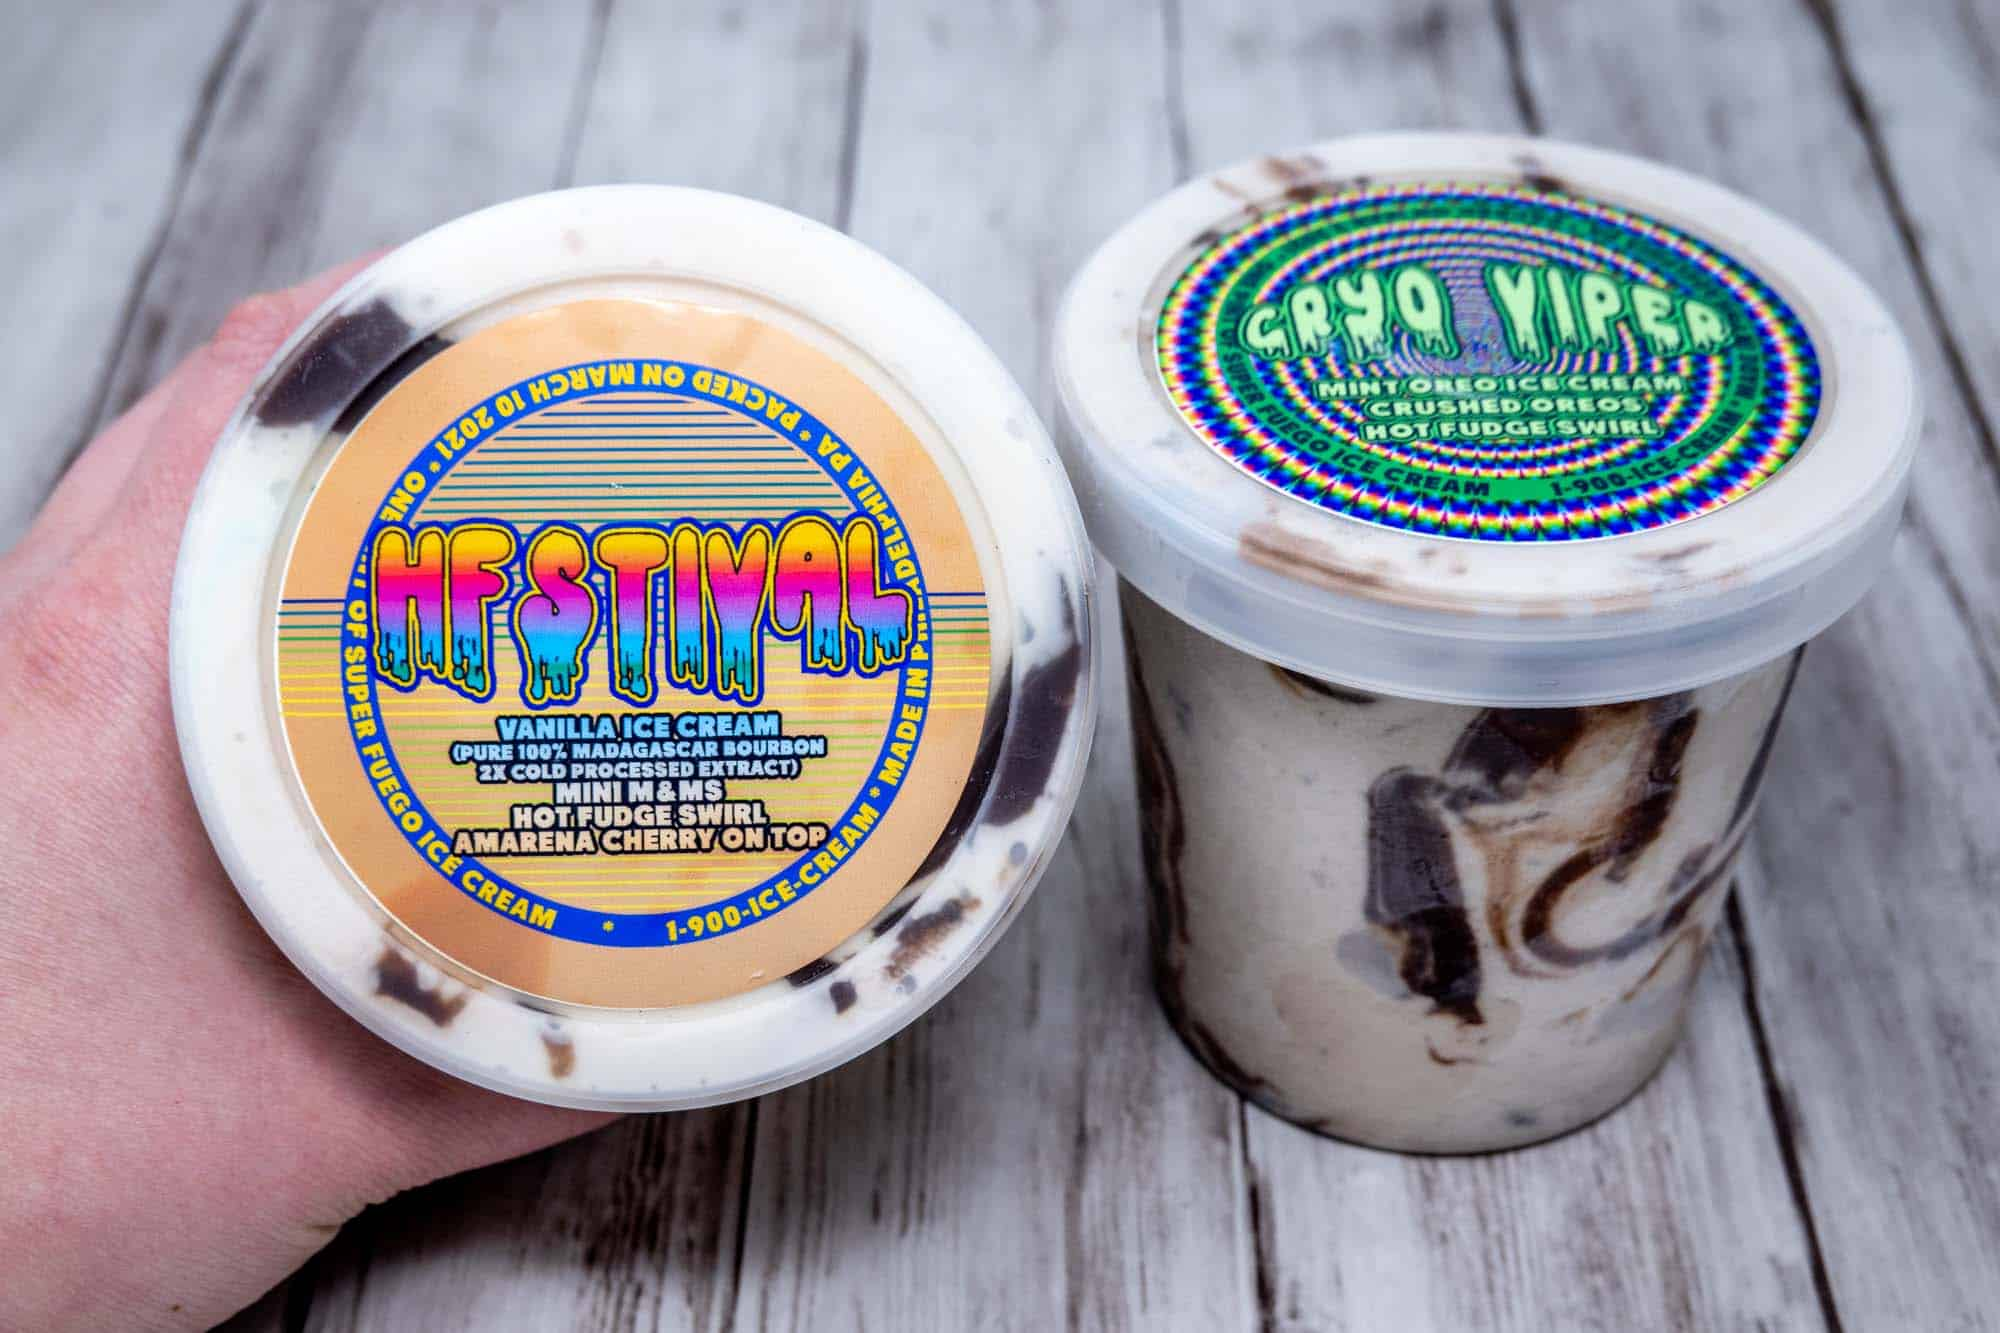 Two clear plastic pints of ice cream with chocolate swirls topped with colorful labels